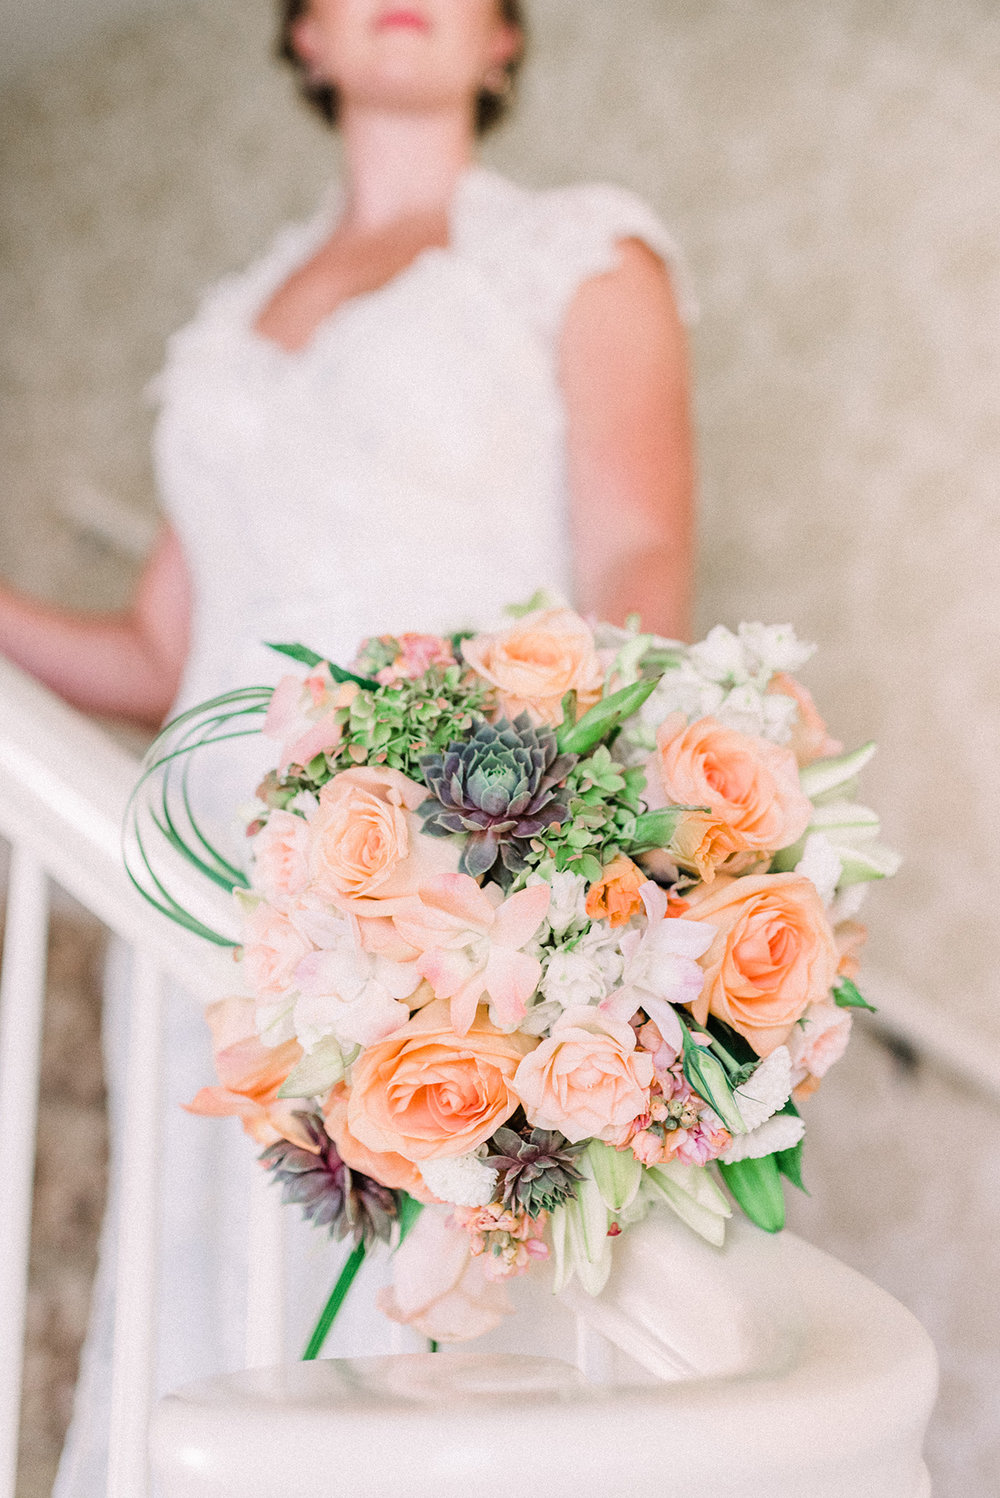 Beautiful wedding floral arrangement at snowden house in waterloo, ia